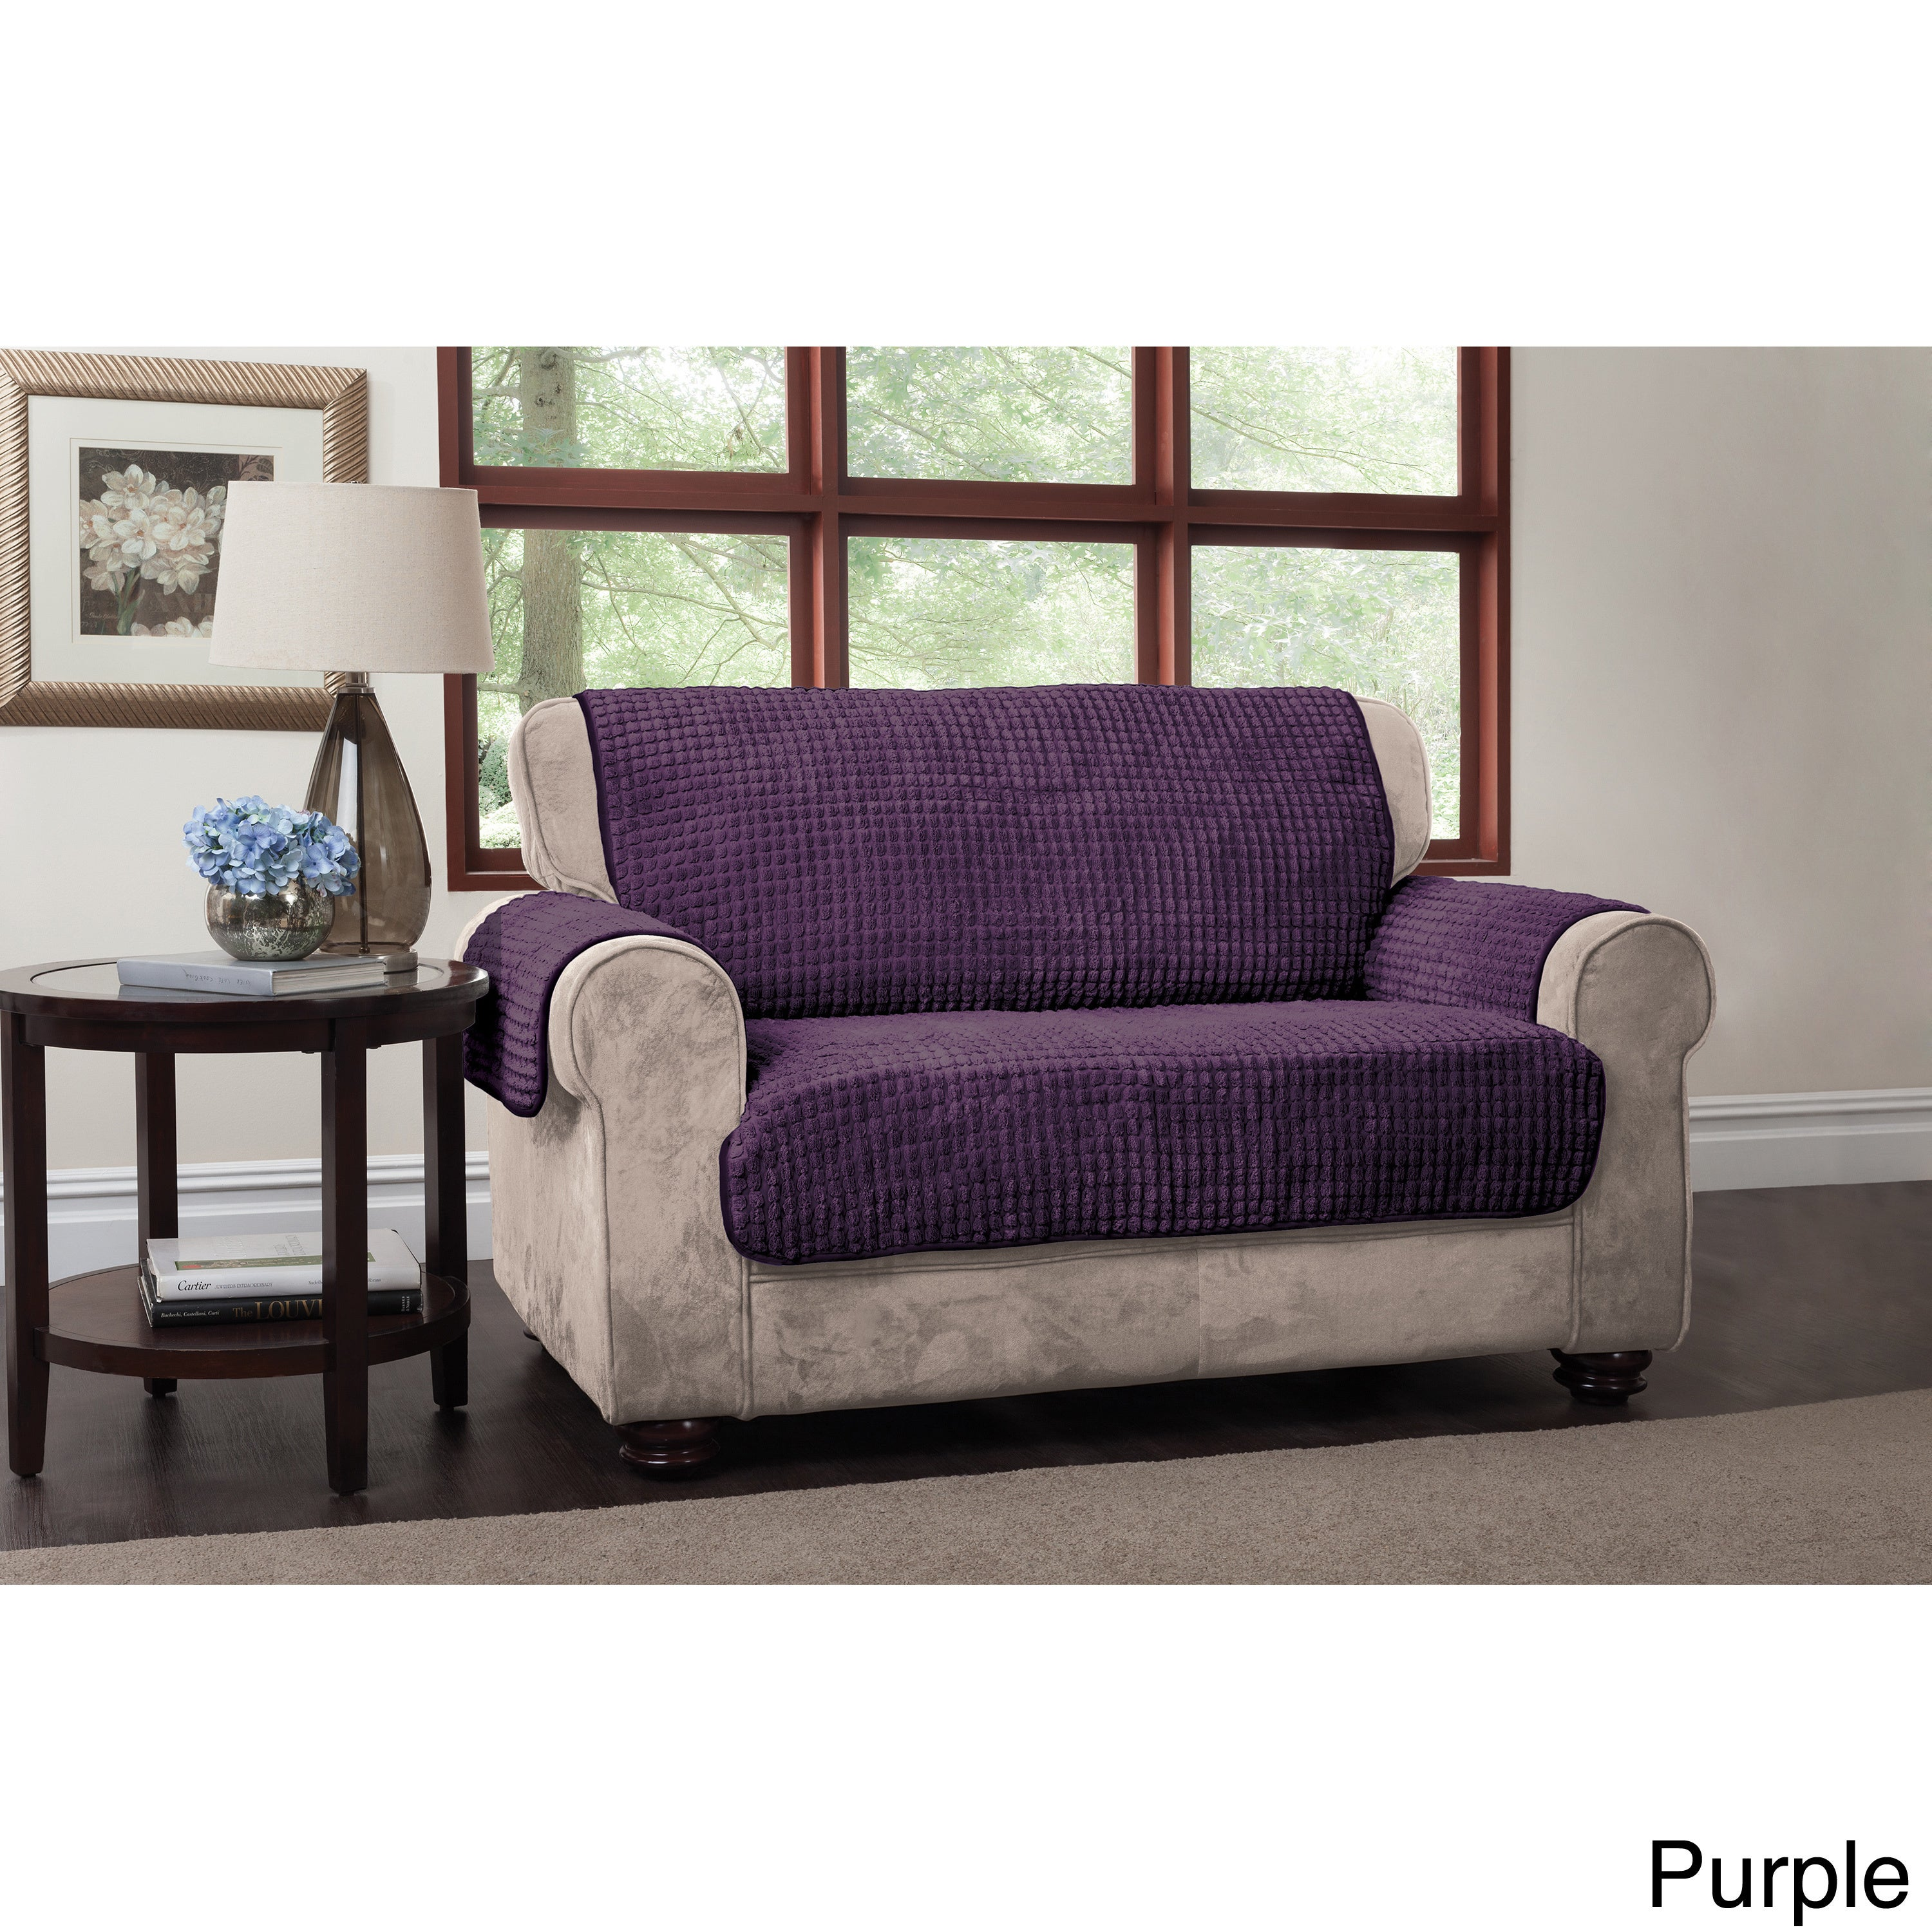 Innovative Textile Solutions Puffs Plush Furniture Protector Sofa Slipcover Free Shipping Today 9136257